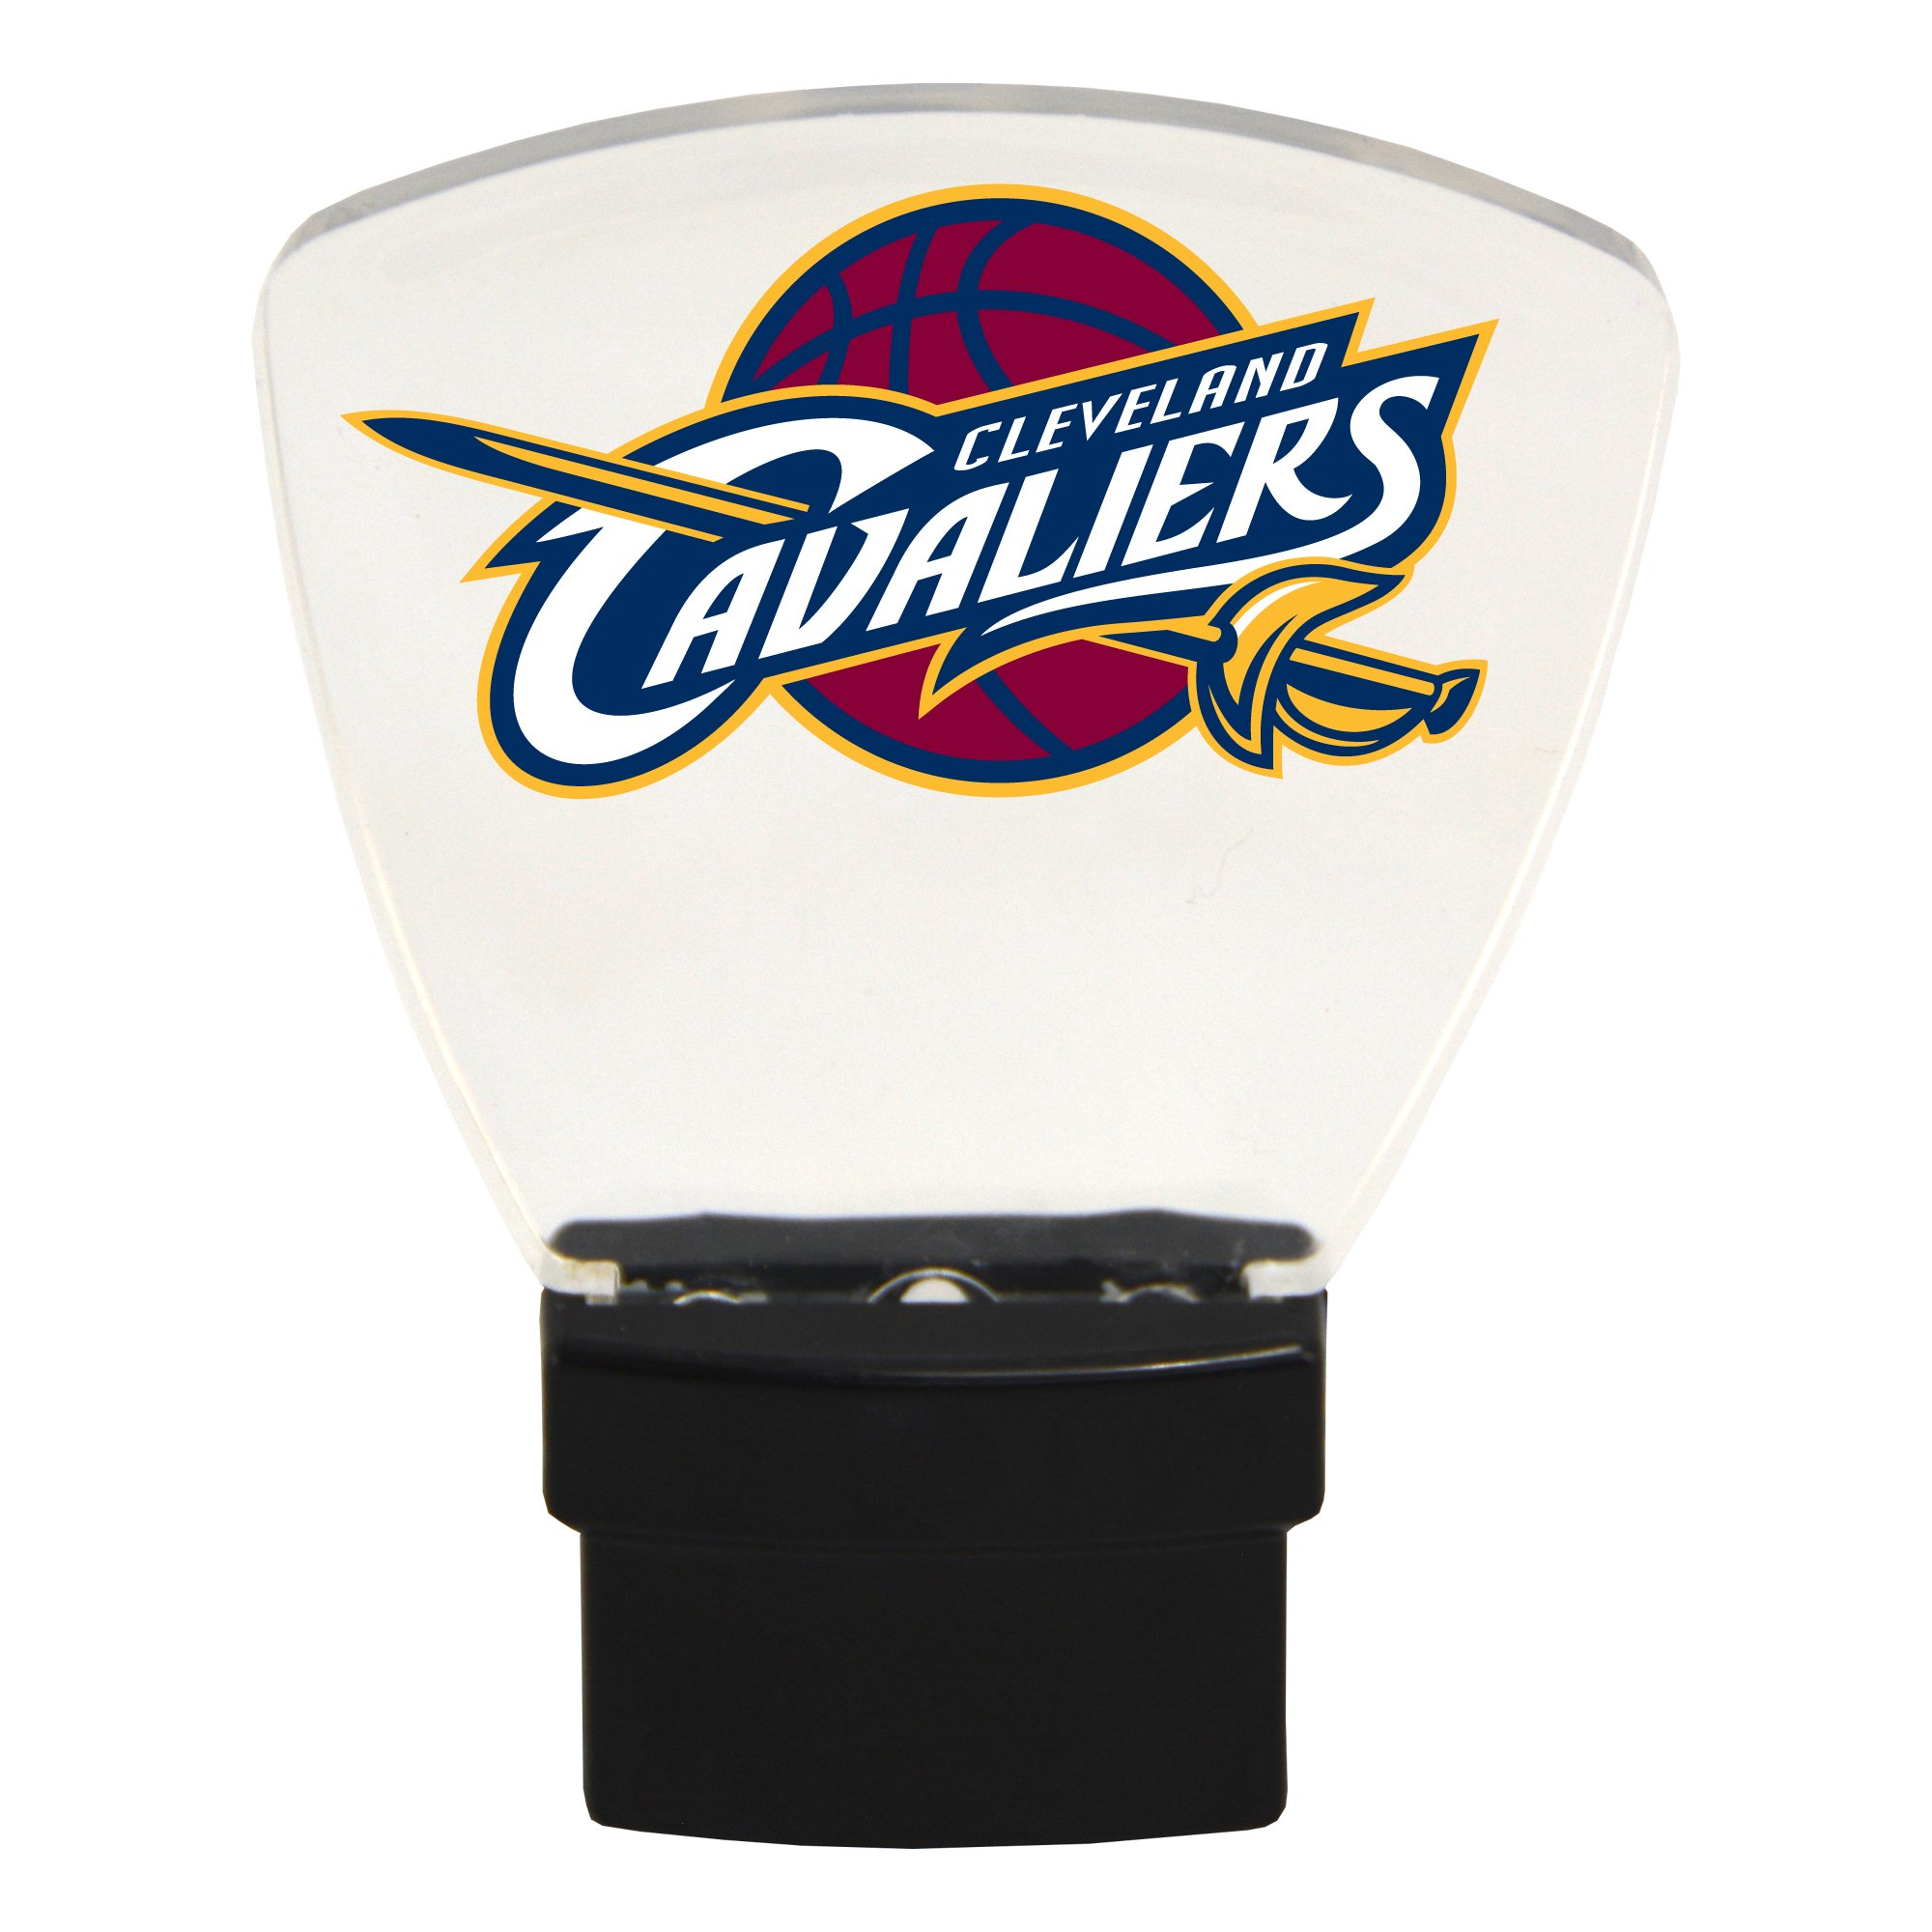 Authentic Street Signs NBA Officially Licensed-LED NIGHT LIGHT-Super Energy Efficient-Prime Power Saving 0.5 watt-Plug In-Great Sports Fan gift for Adults-Babies-Kids Room (Cleveland Cavaliers)